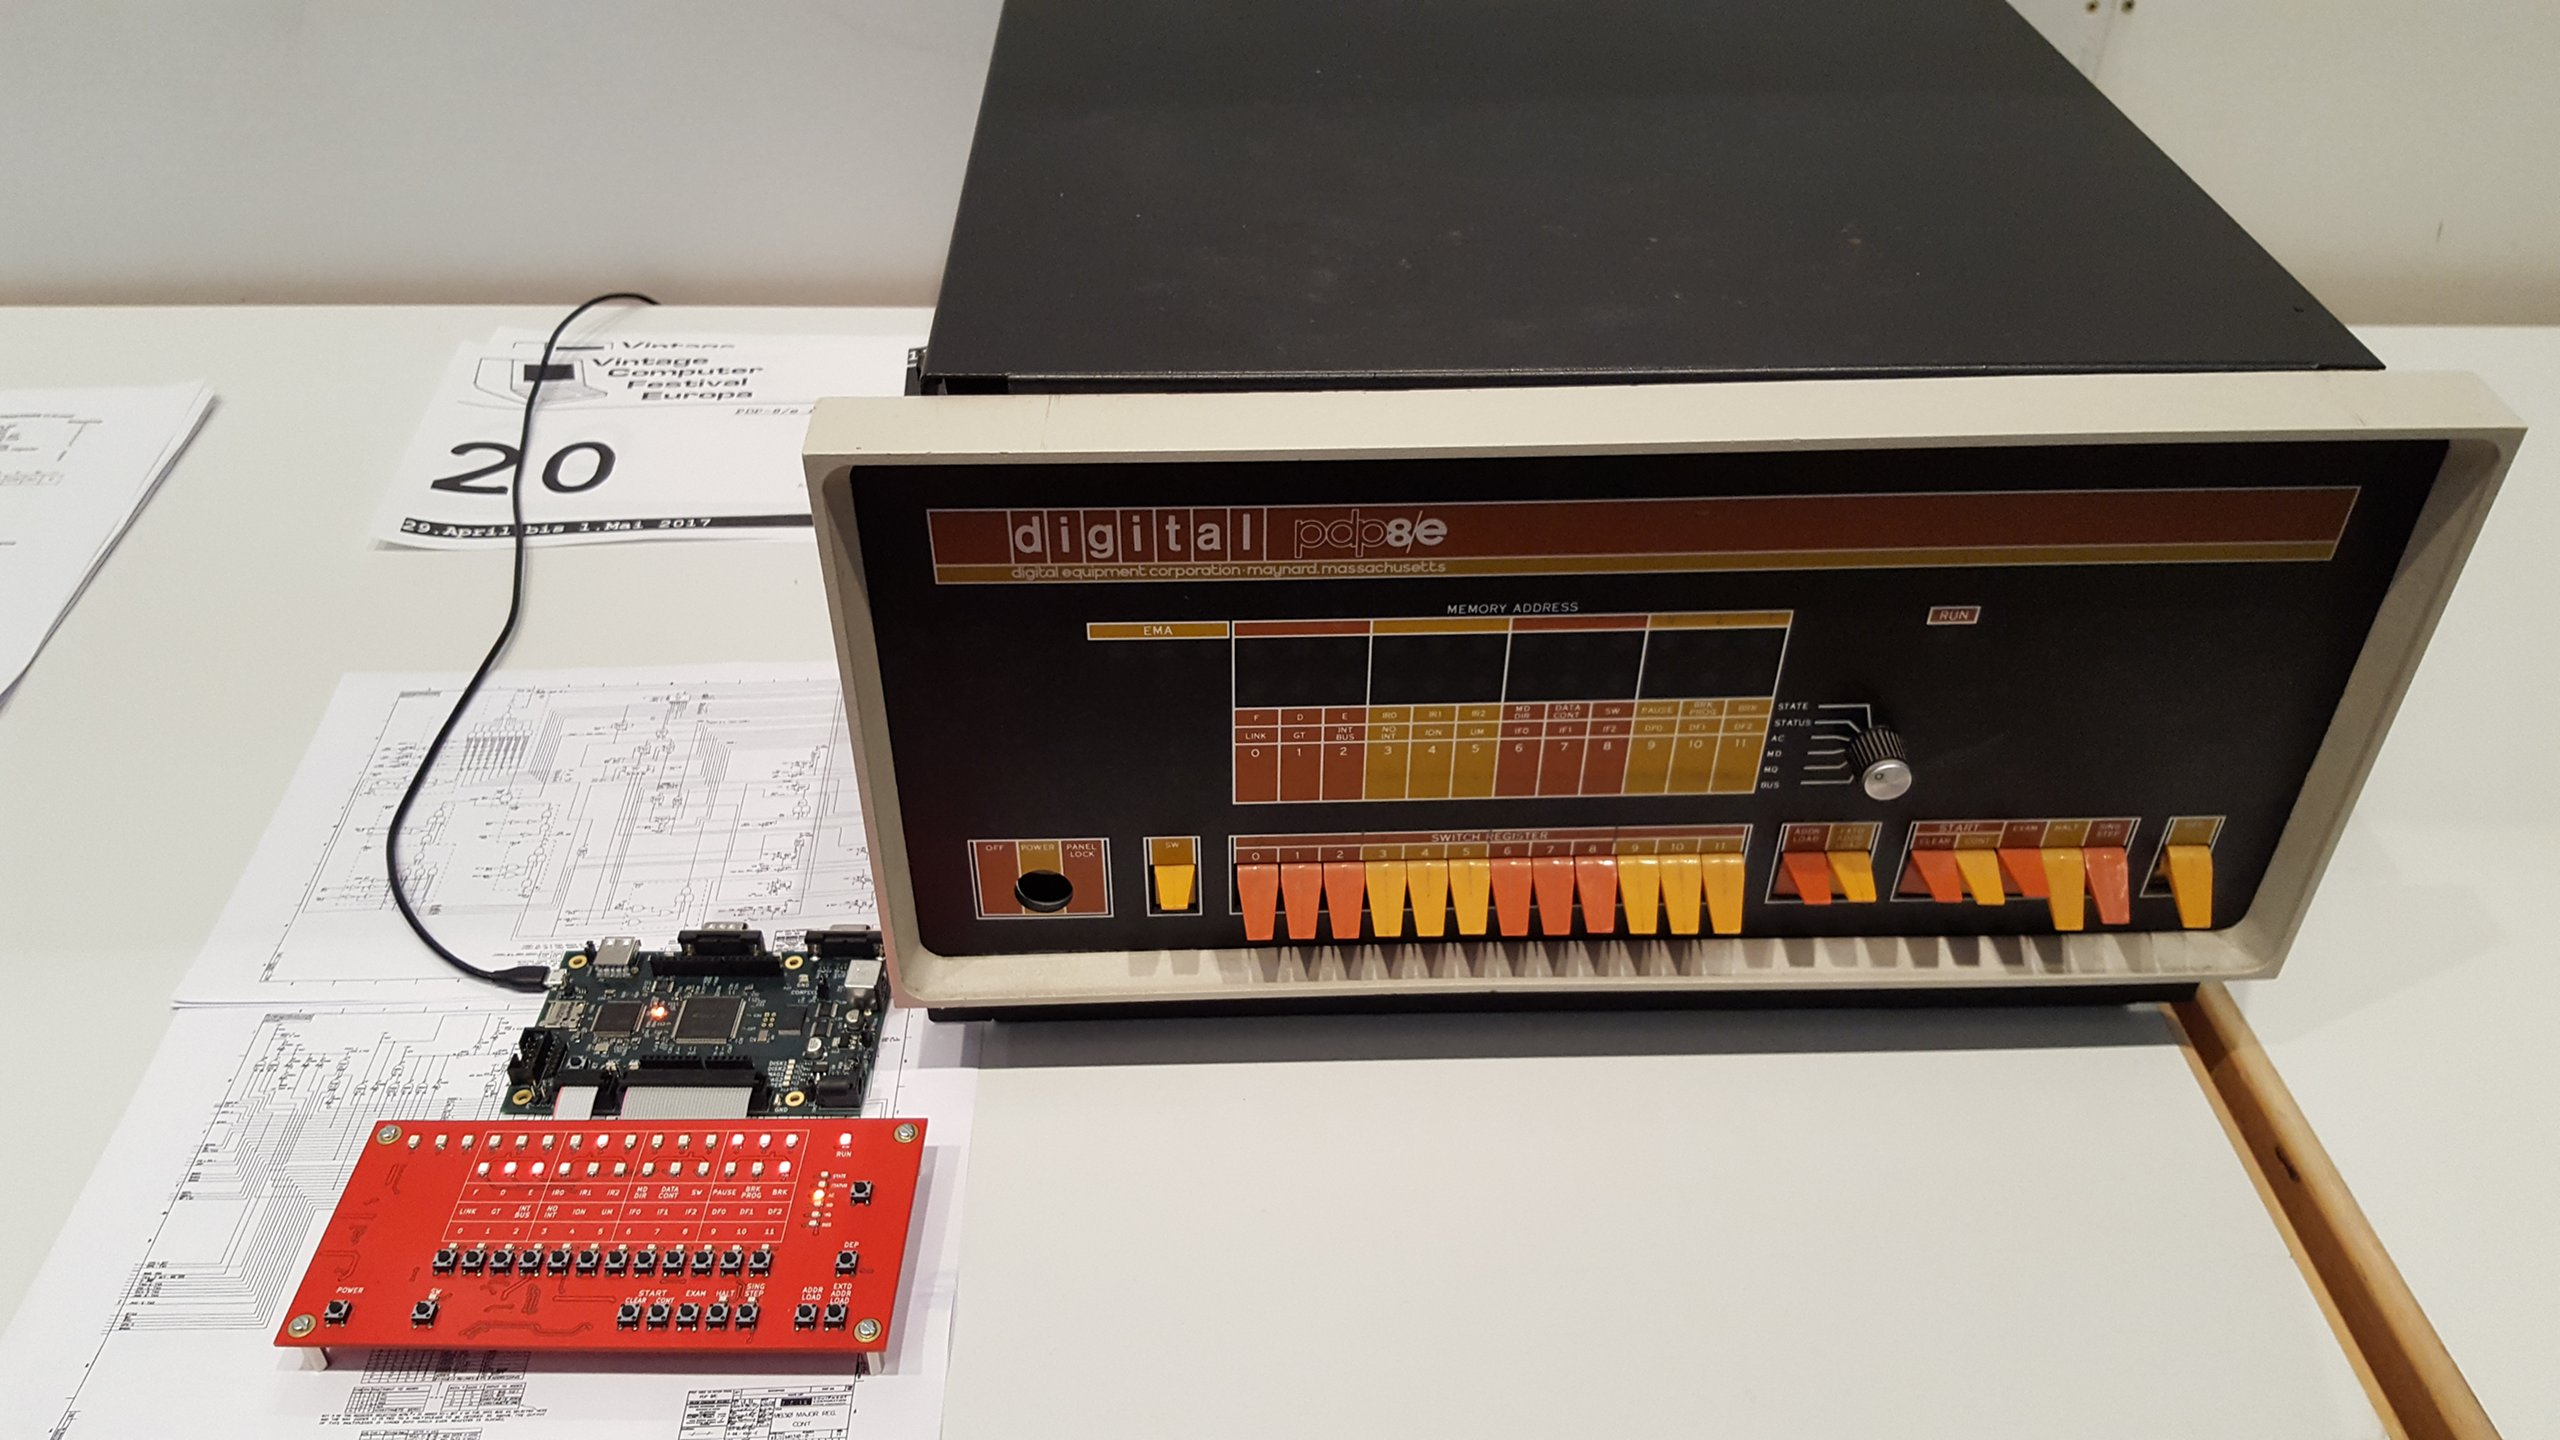 My implementation on display next to a real PDP-8/e at VCFe 18.0